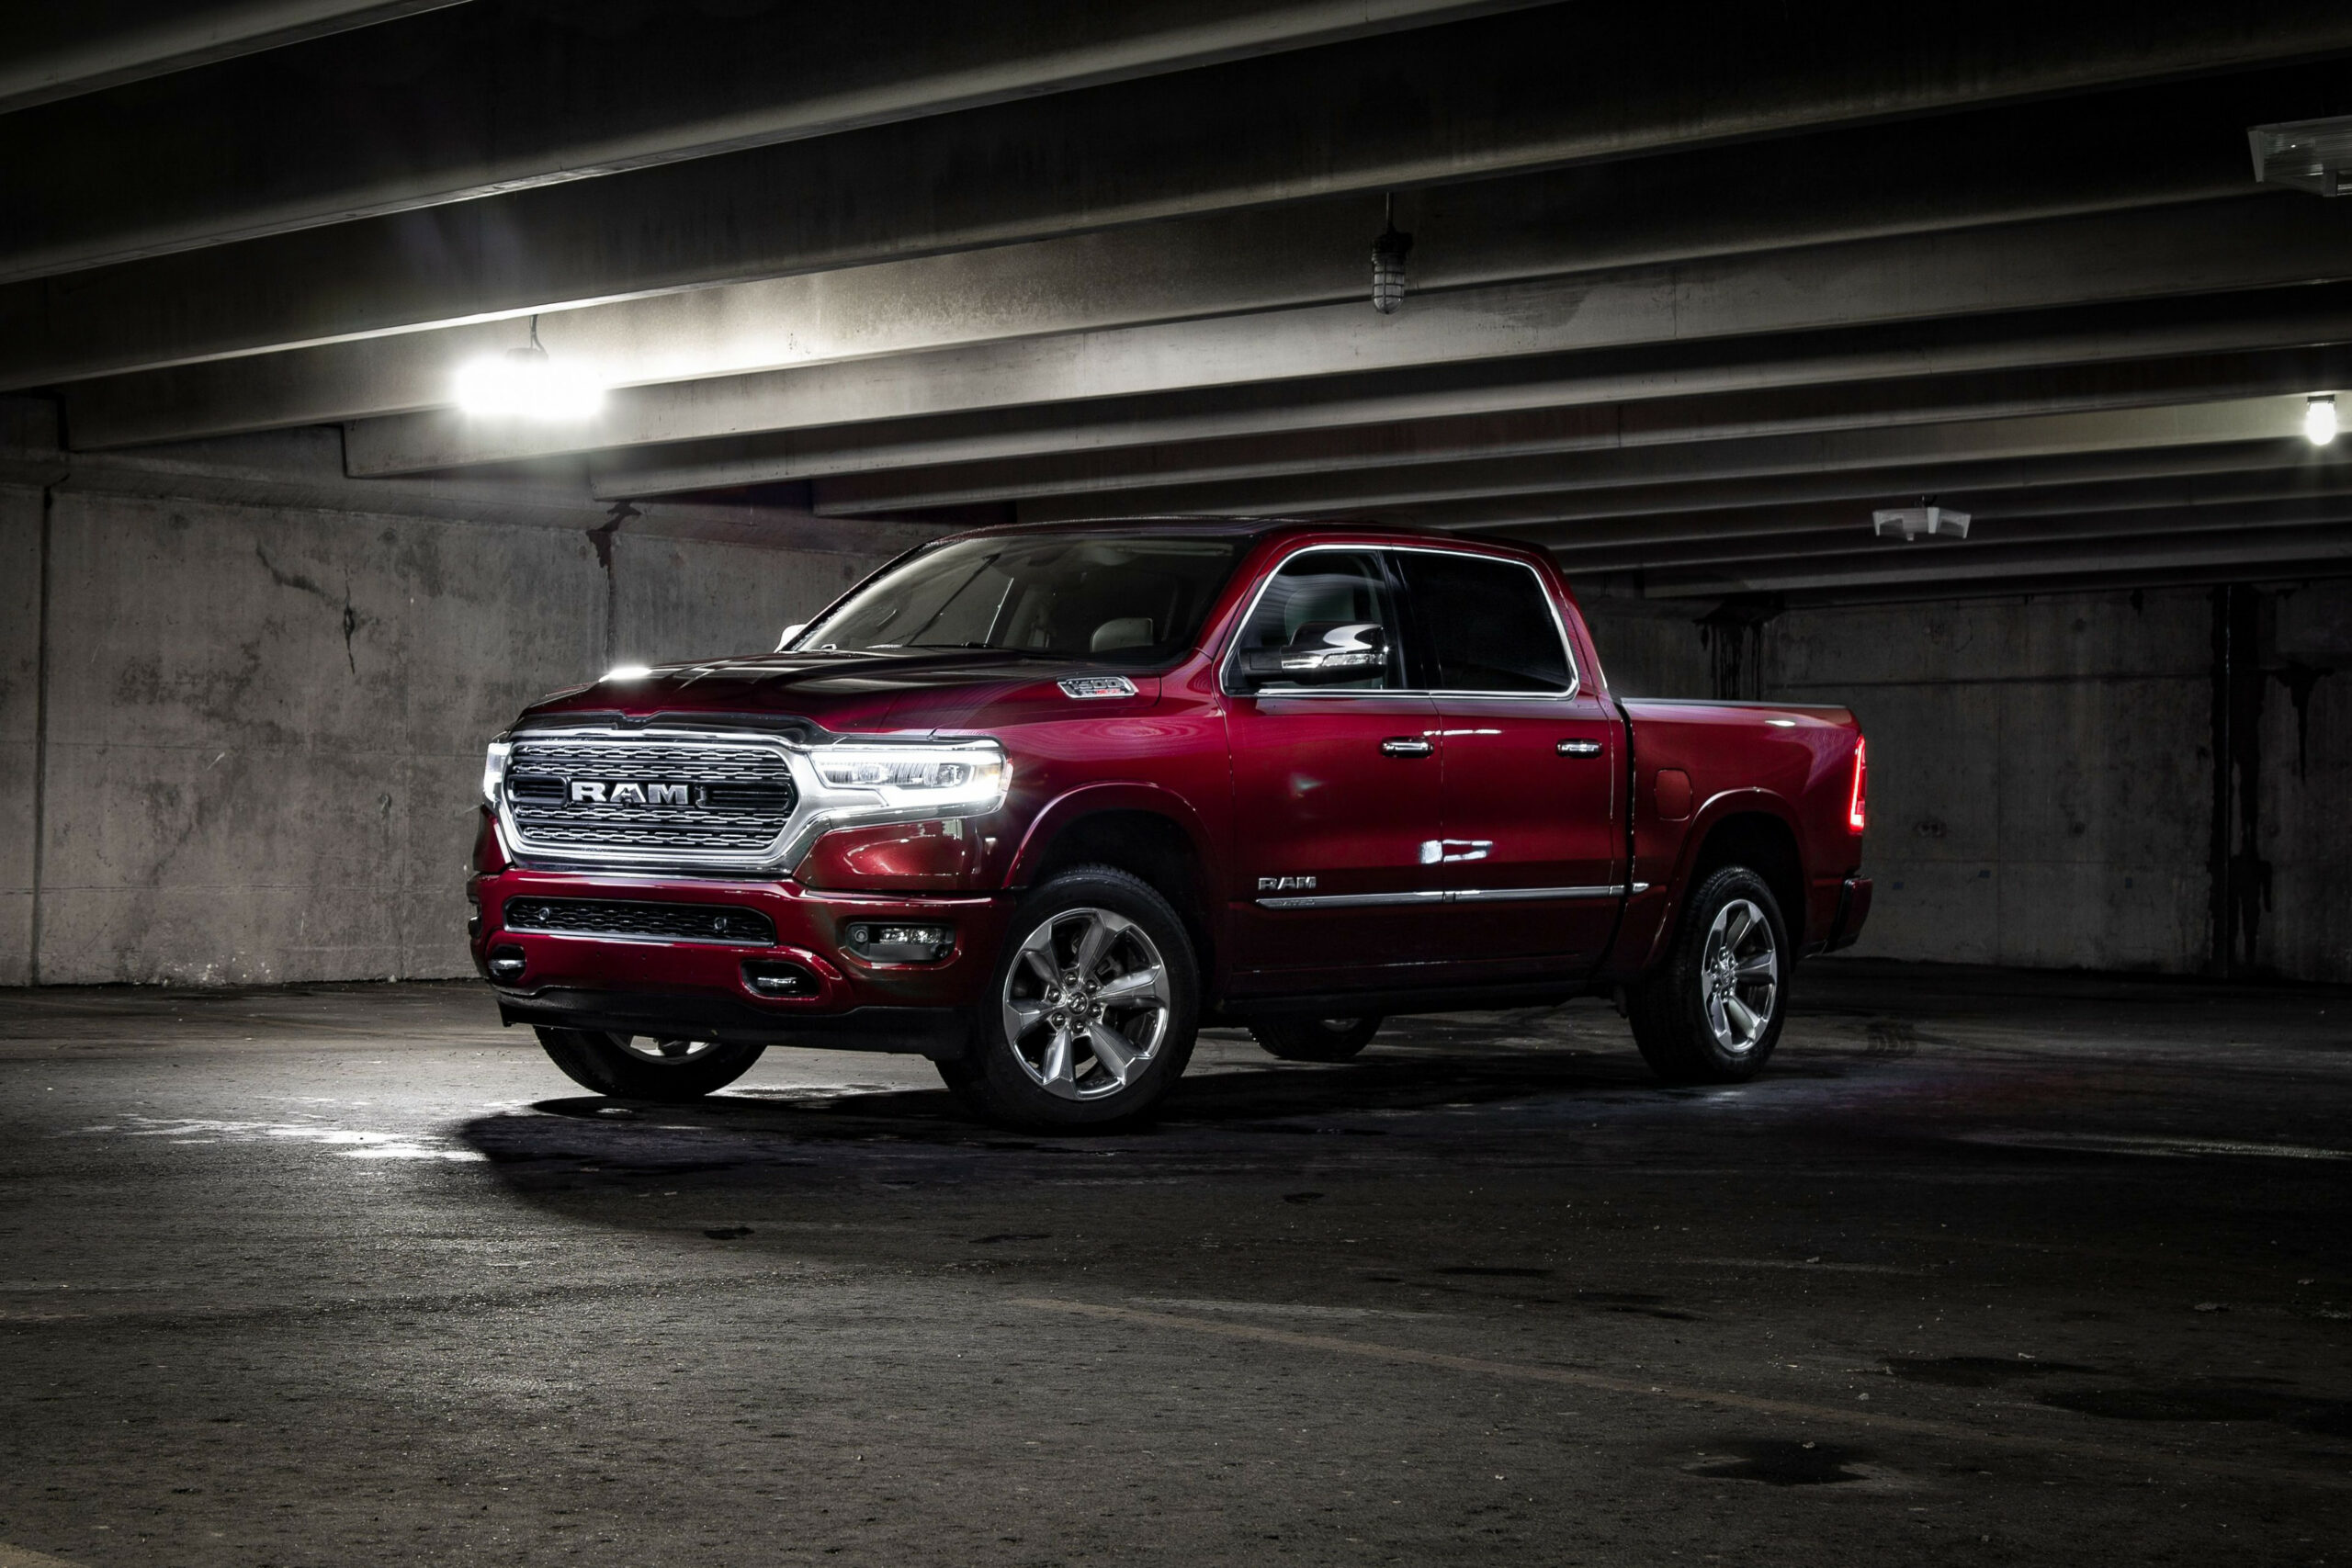 8 Ram 8 EcoDiesel Misses Its EPA Highway Rating in Our Testing